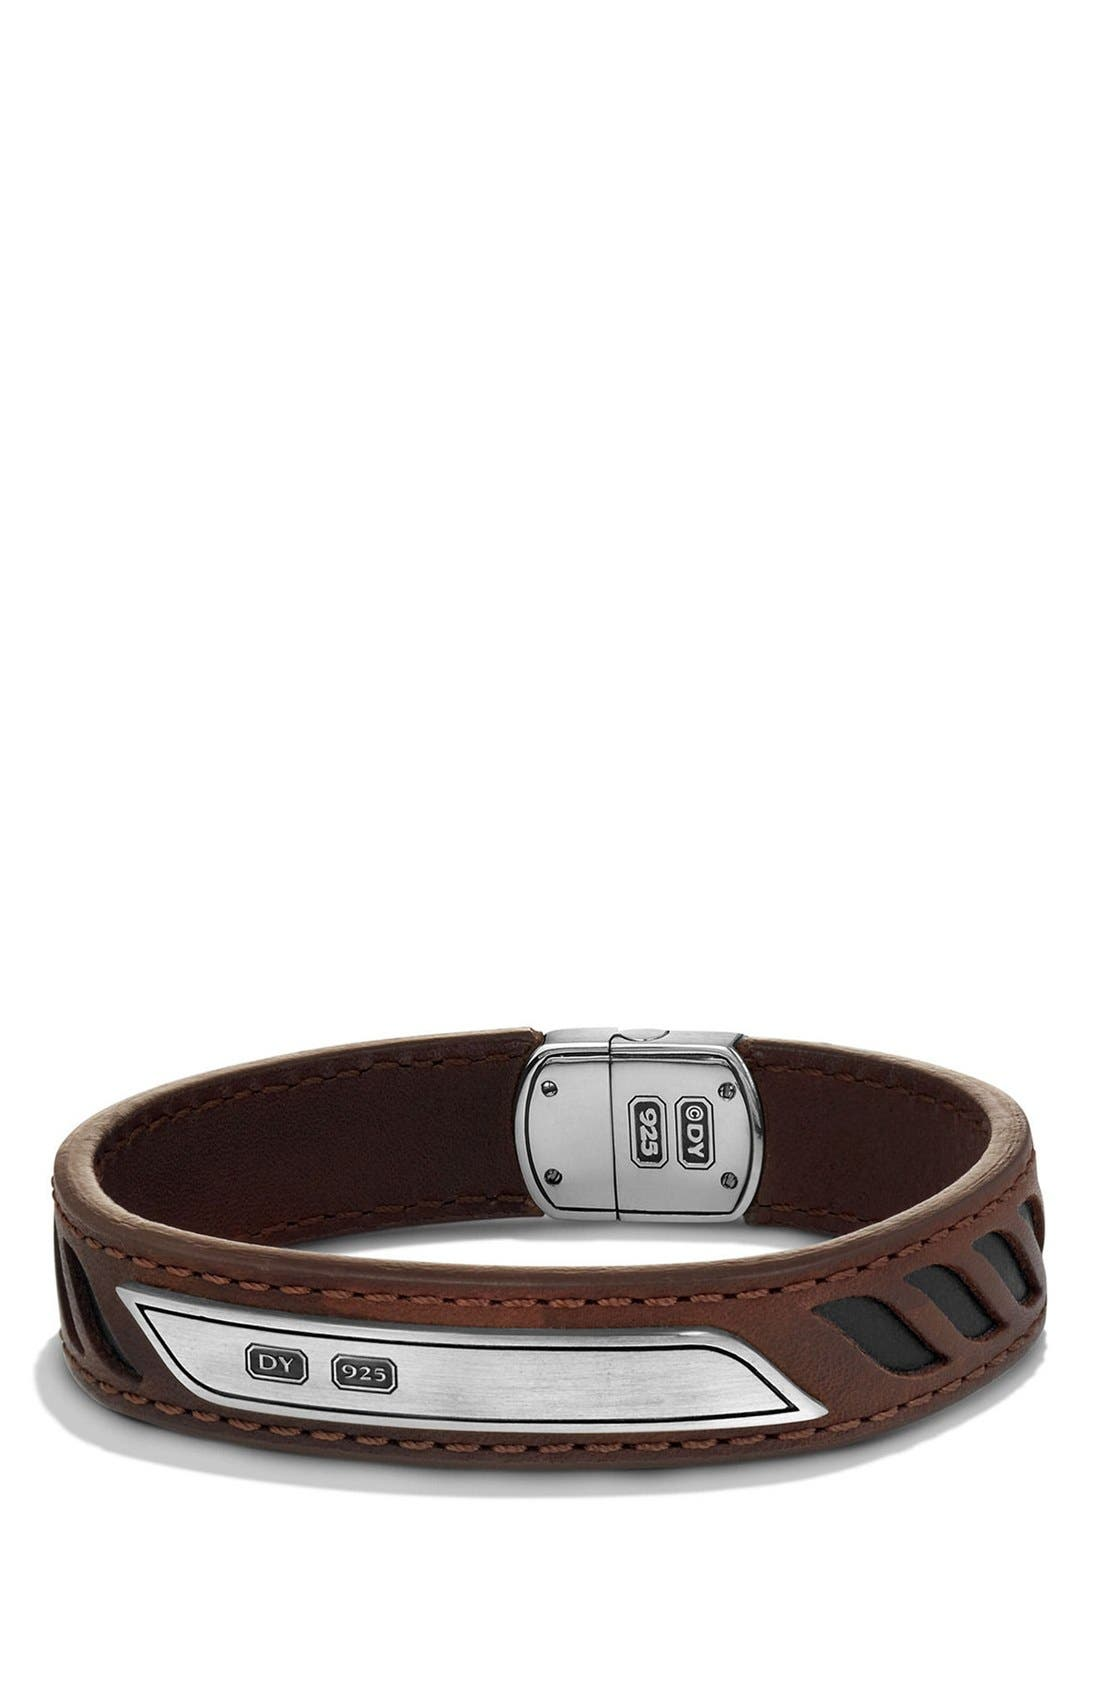 Main Image - David Yurman 'Graphic Cable' Leather ID Bracelet